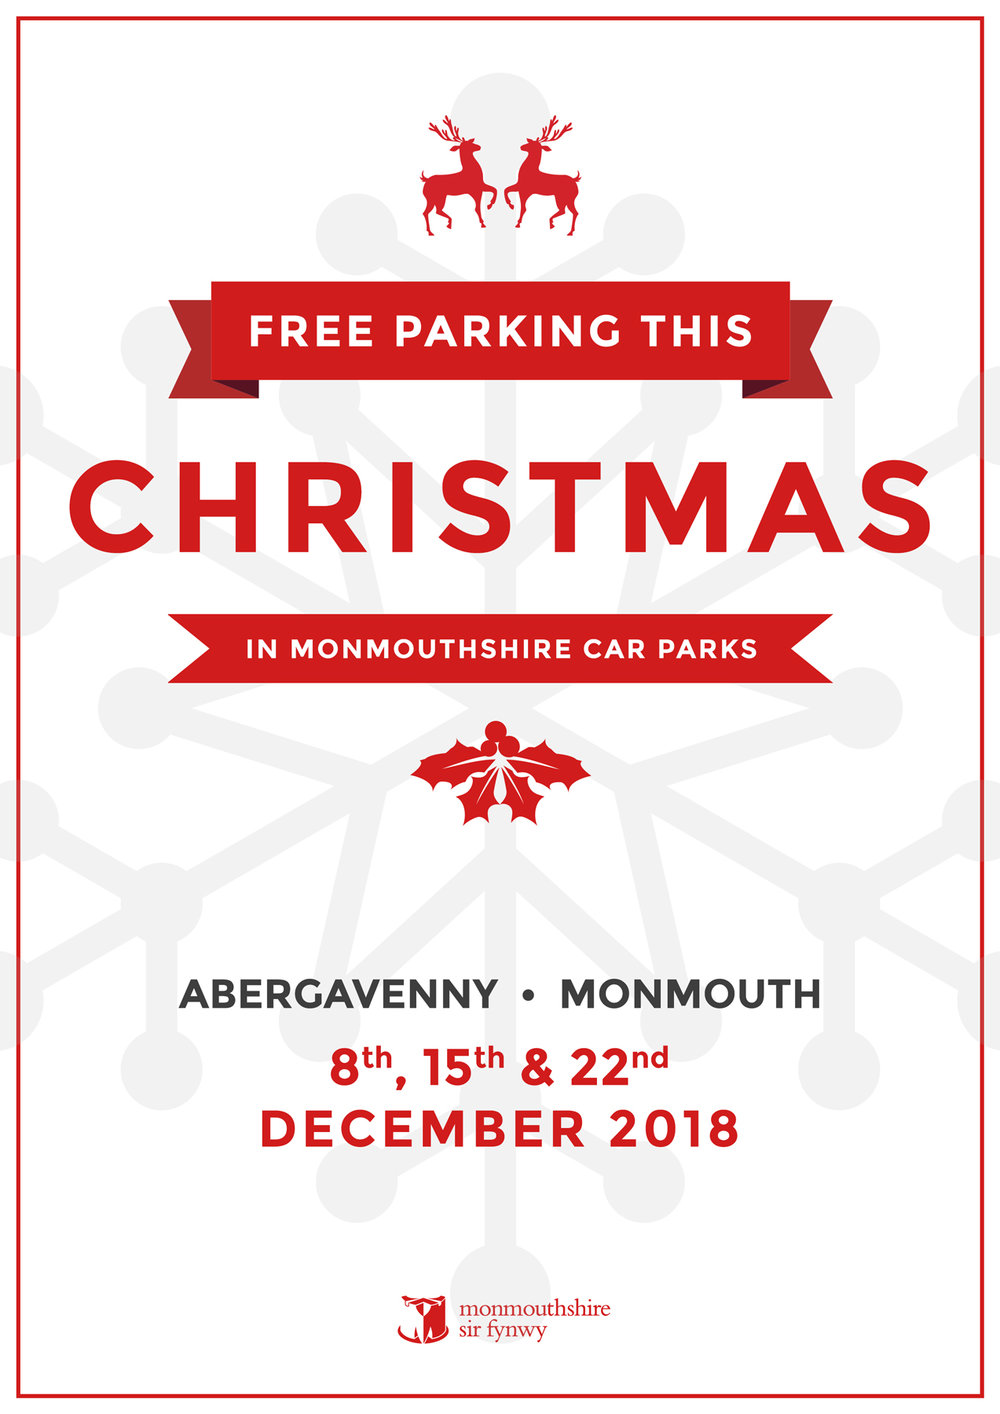 Christmas-Parking-Poster---AbMon-2018-ENG.jpg